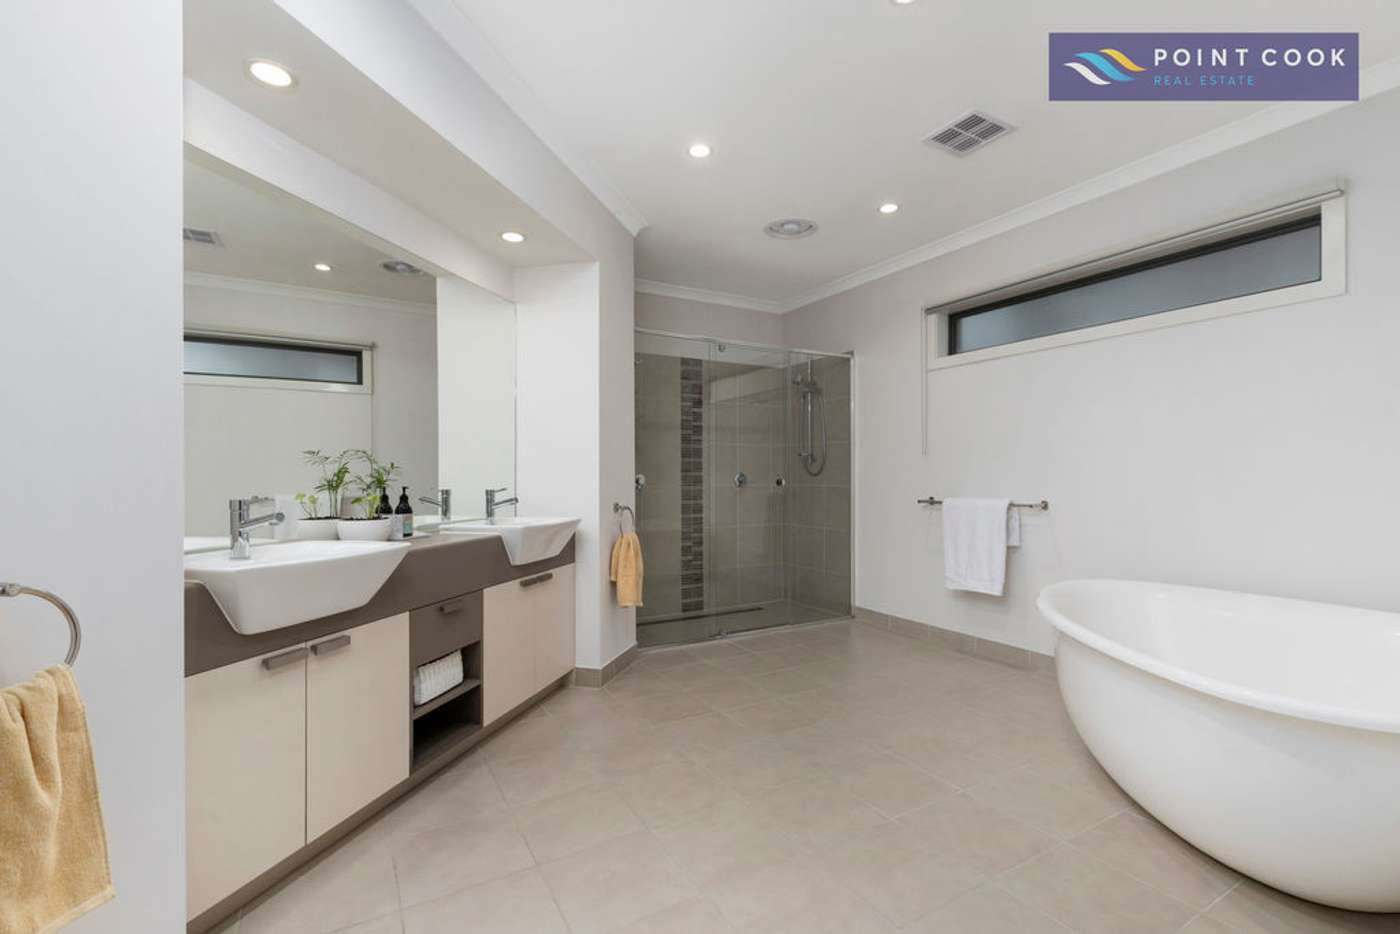 Seventh view of Homely house listing, 17 Japonica Way, Point Cook VIC 3030